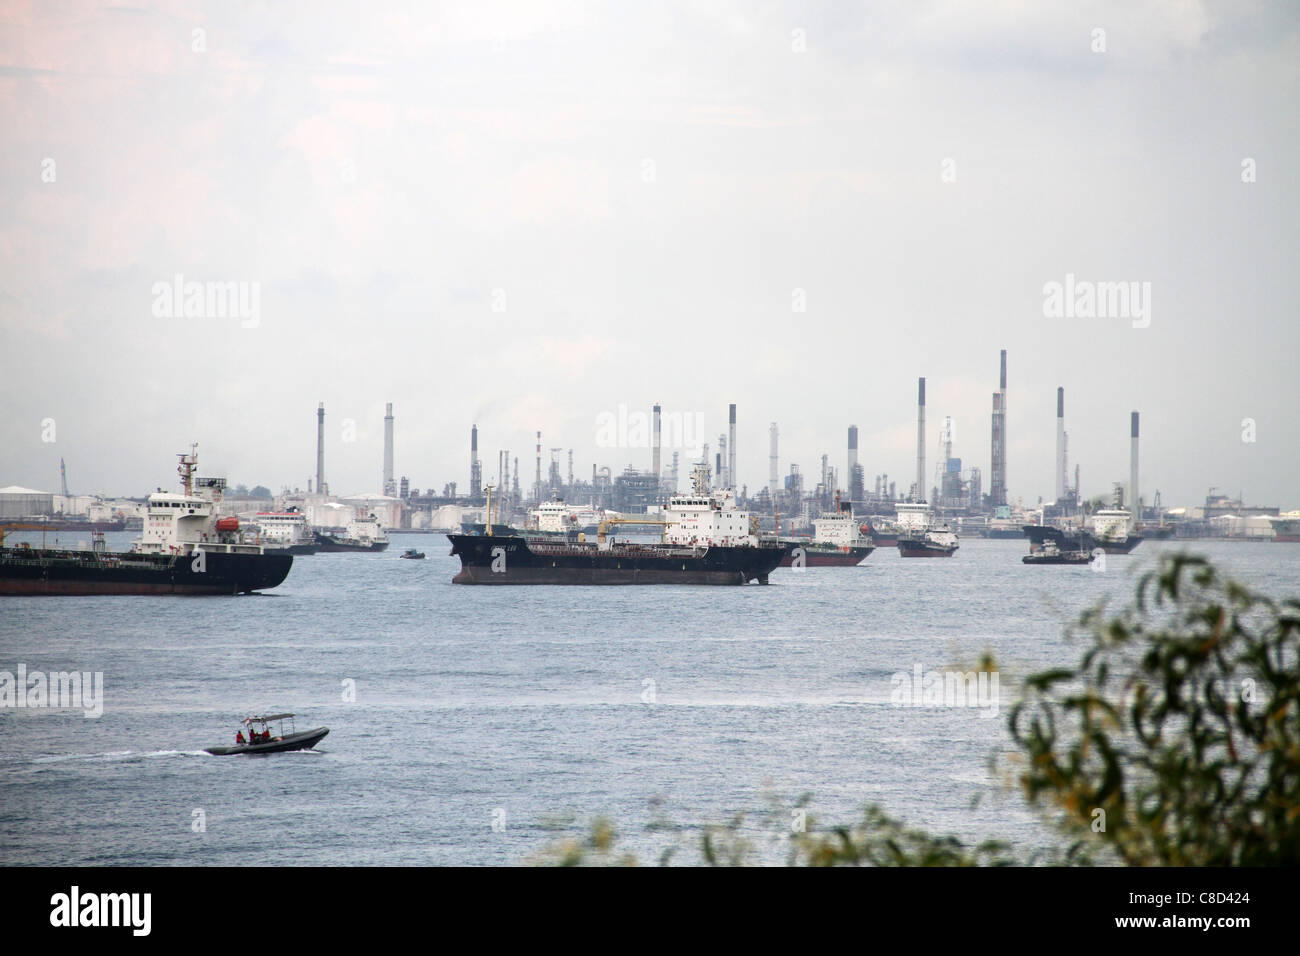 Container vessels near the Port of Singapore, South China Sea. - Stock Image